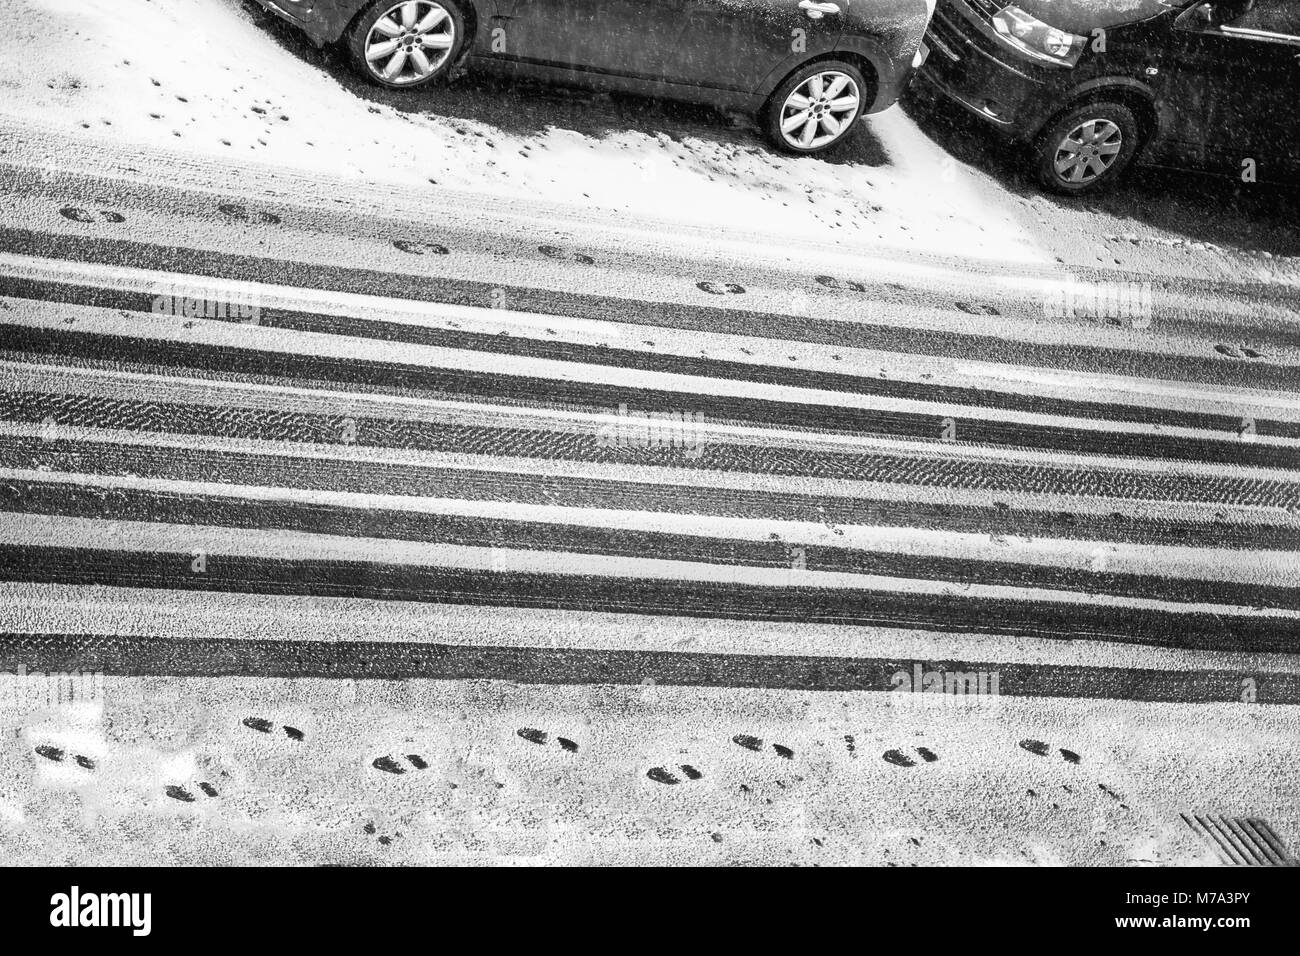 black and white car treads forming stripes on a road and footprints in snow with part of a car parked by the road - Stock Image